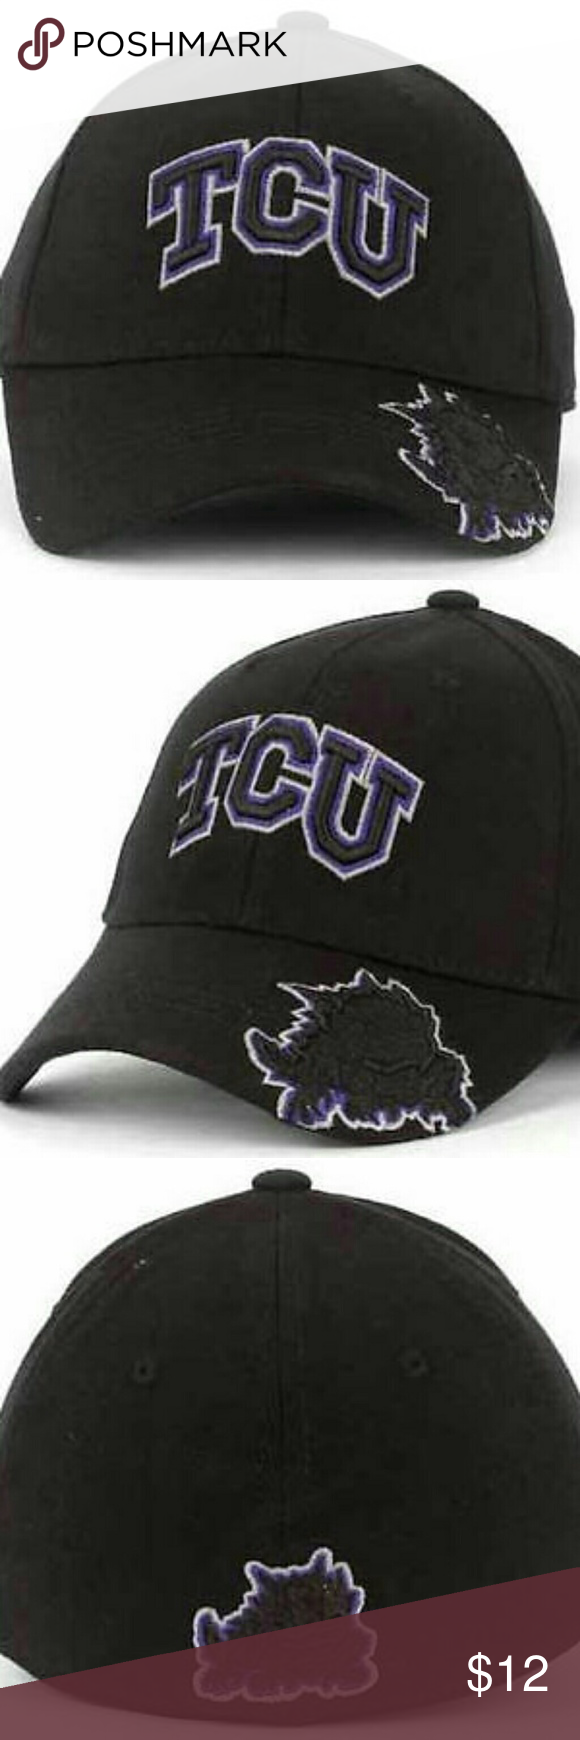 low priced 04215 128b0 TCU Horned Frogs NCAA TOW Stretch Fitted Hat TCU Horned Frogs NCAA TOW